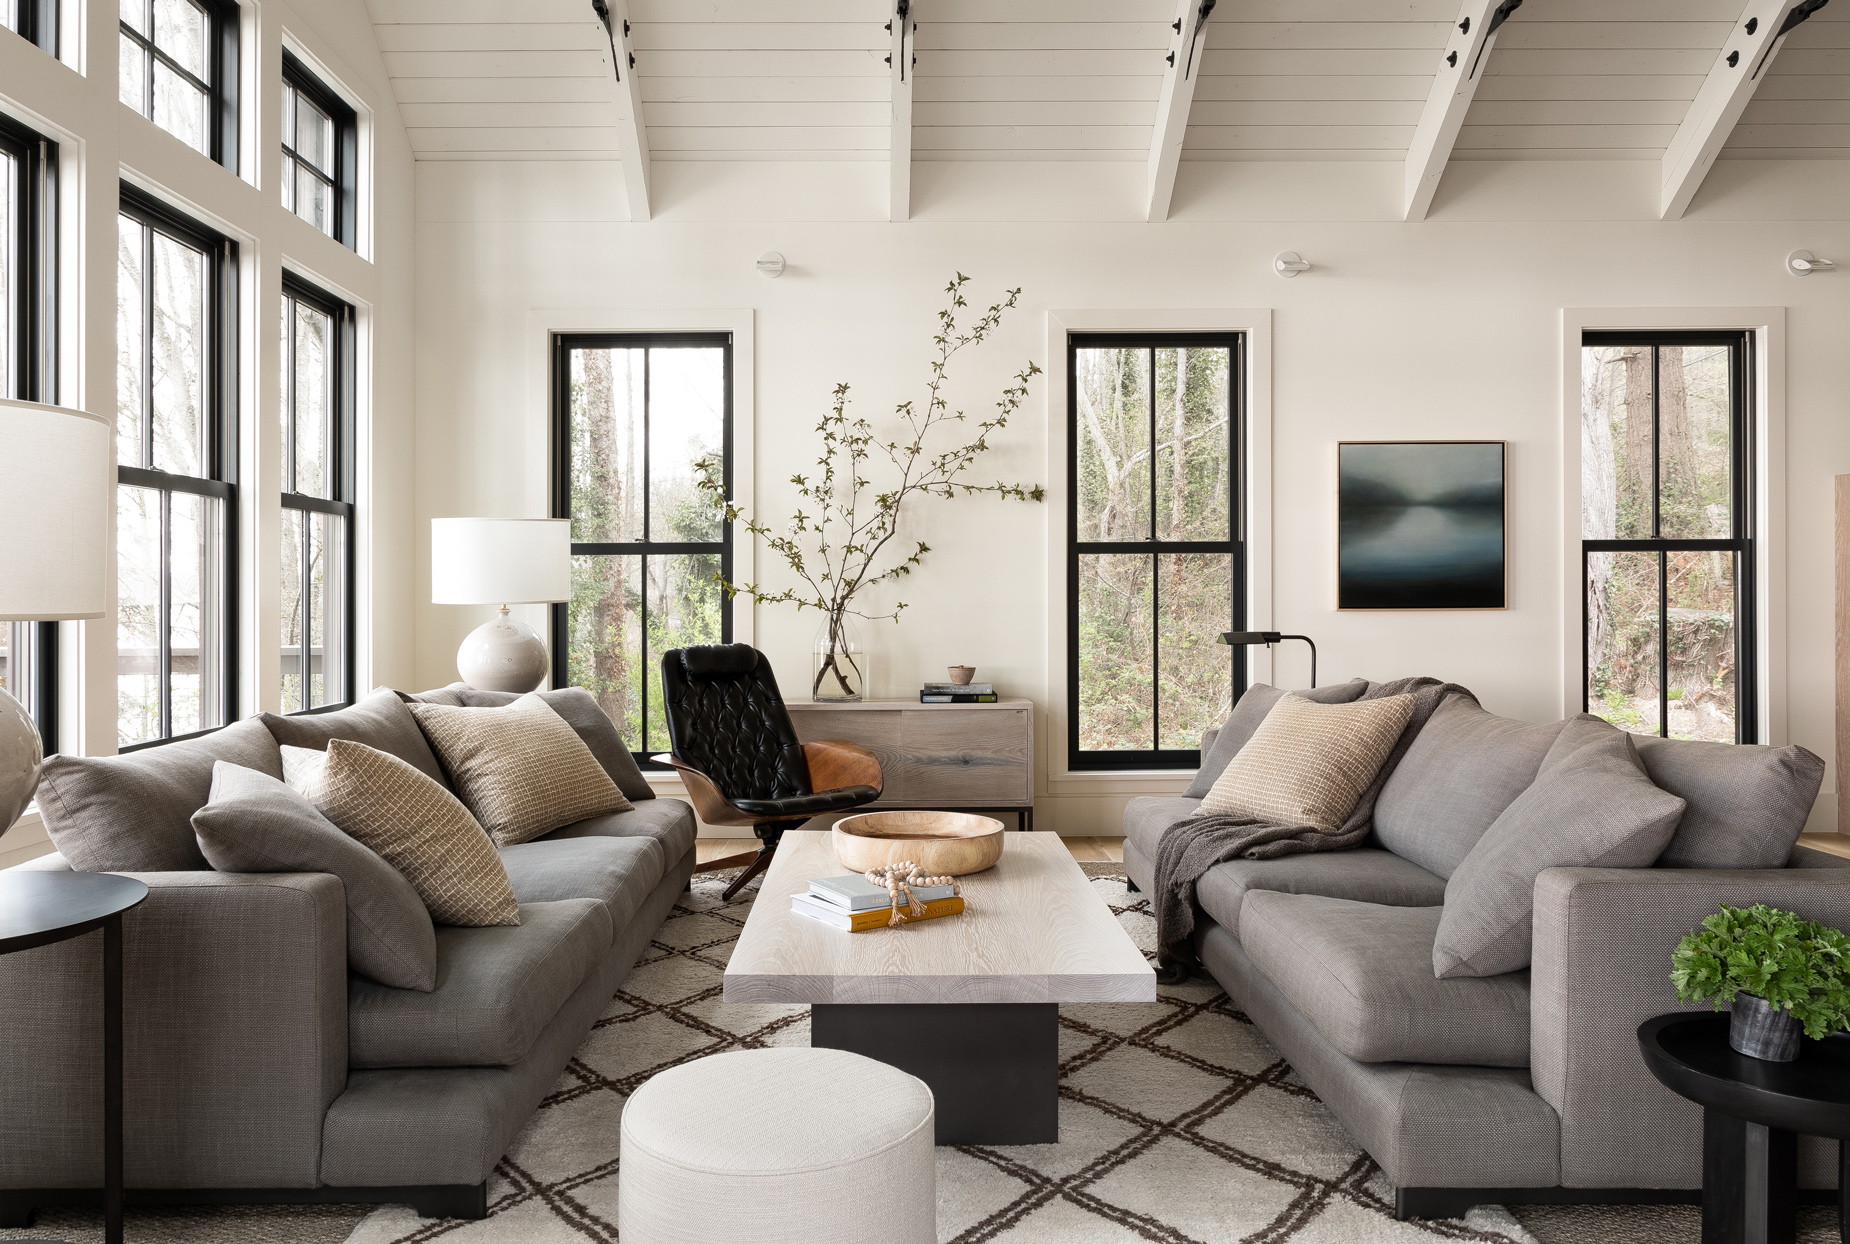 neutral-colored living room with greenery accents and vaulted ceiling